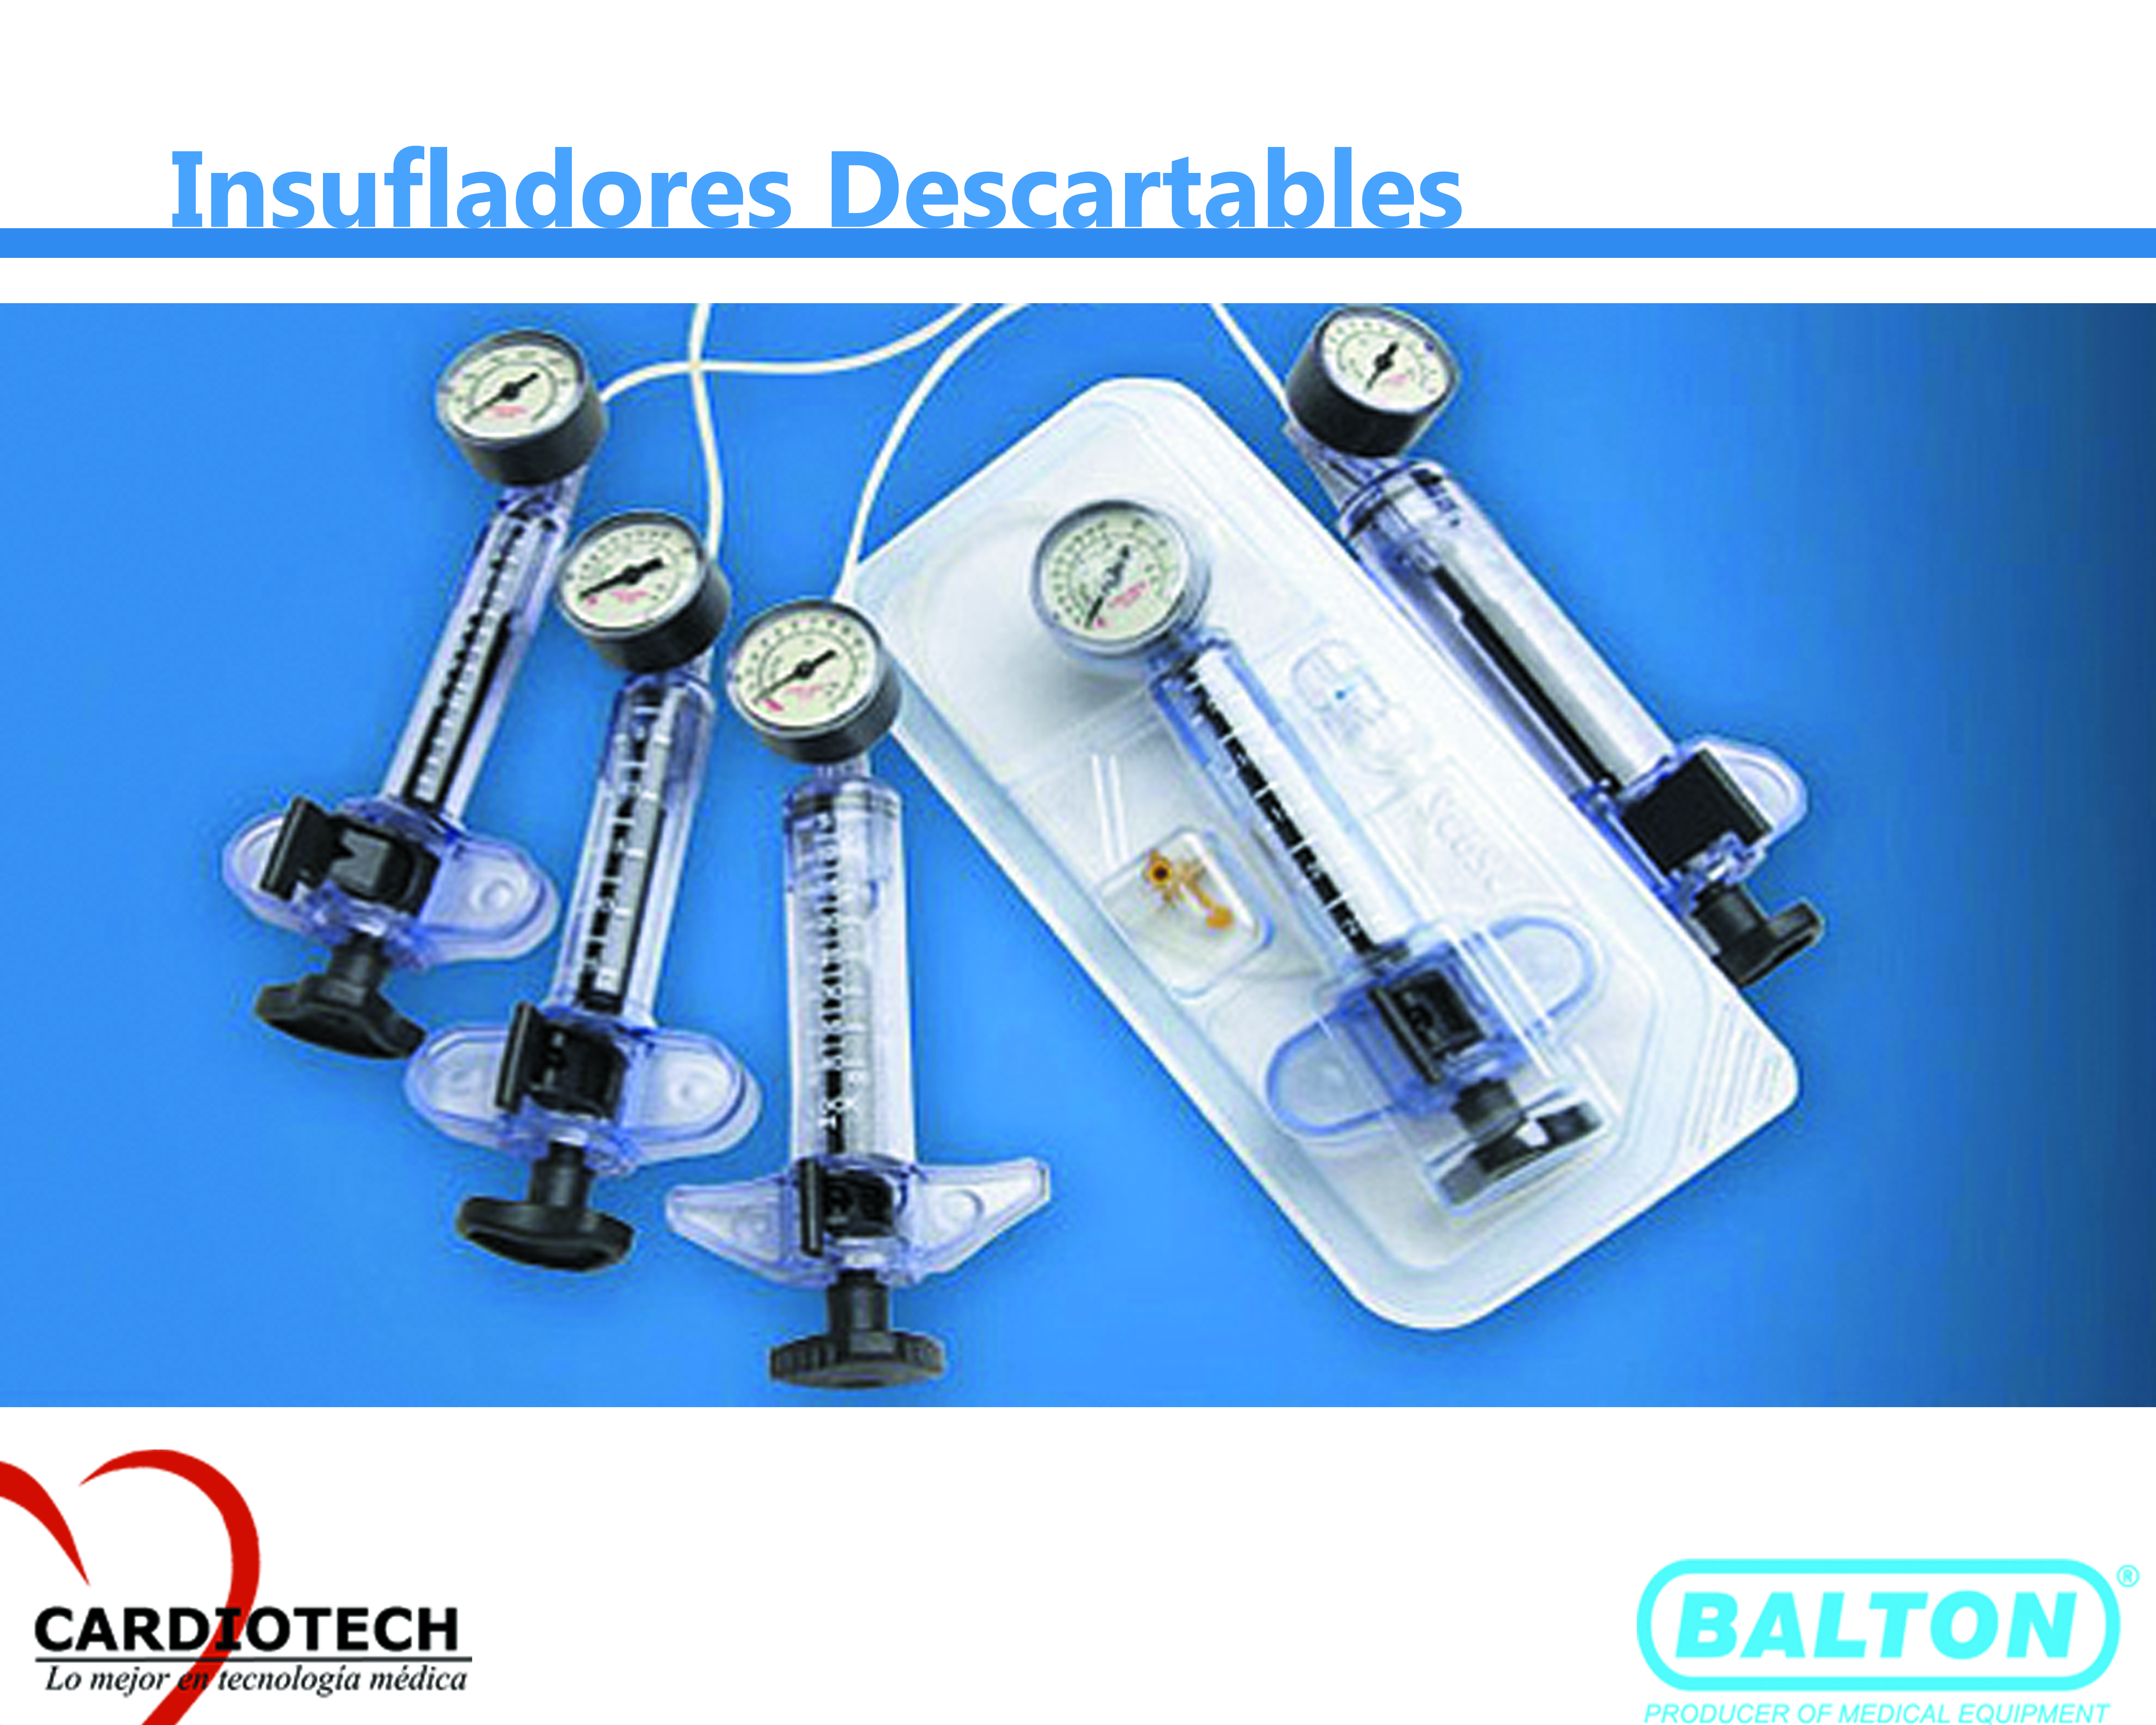 dispositivos de inflado desechables